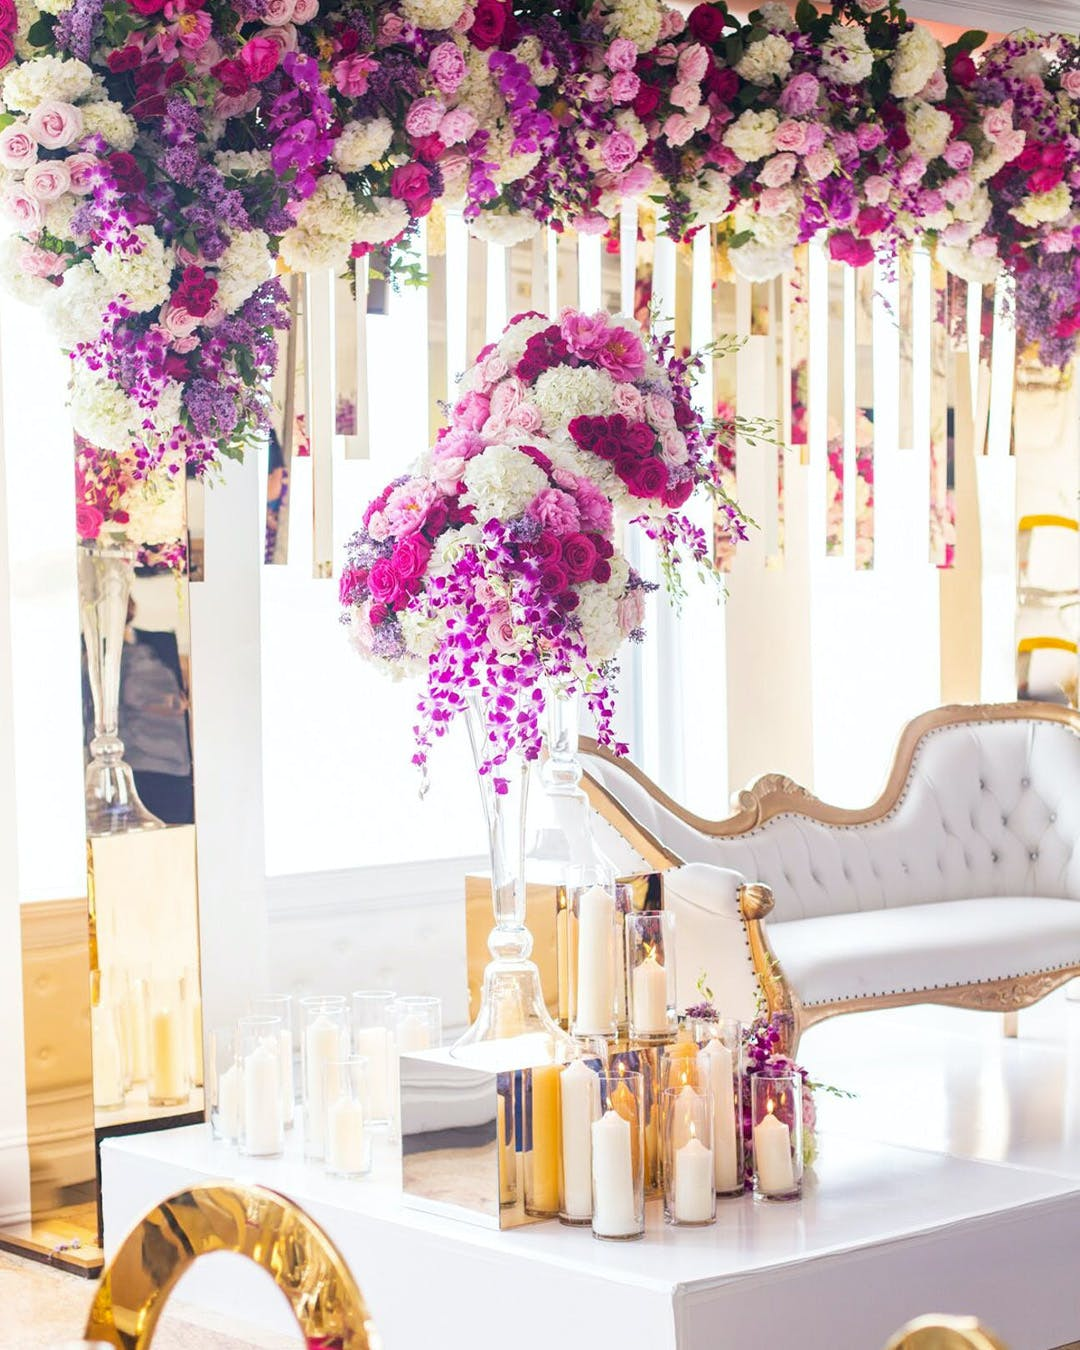 Engagement party with South Asian wedding décor | PartySlate